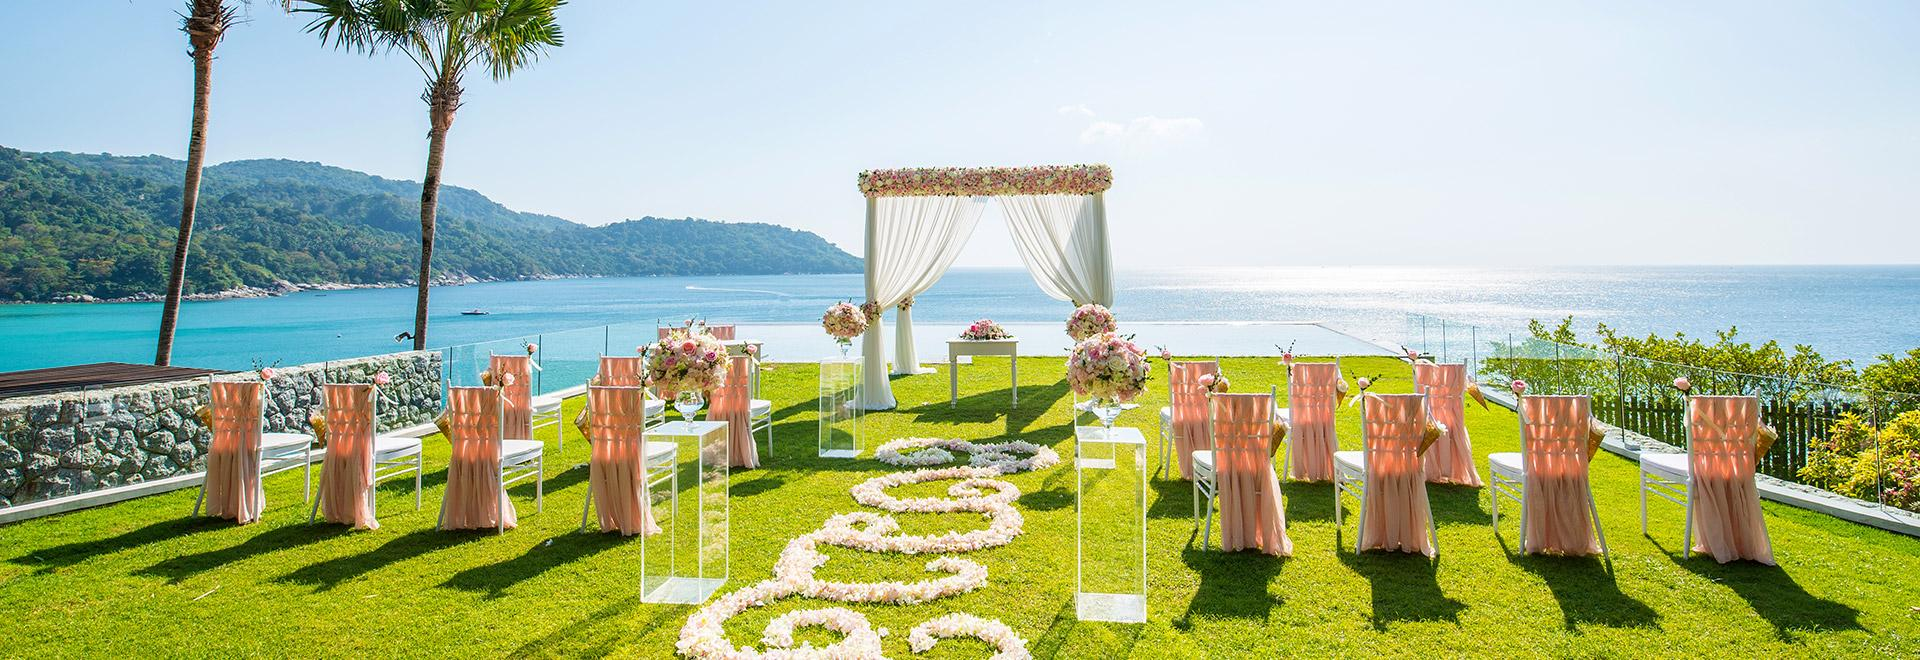 A scenic set up for a destination wedding